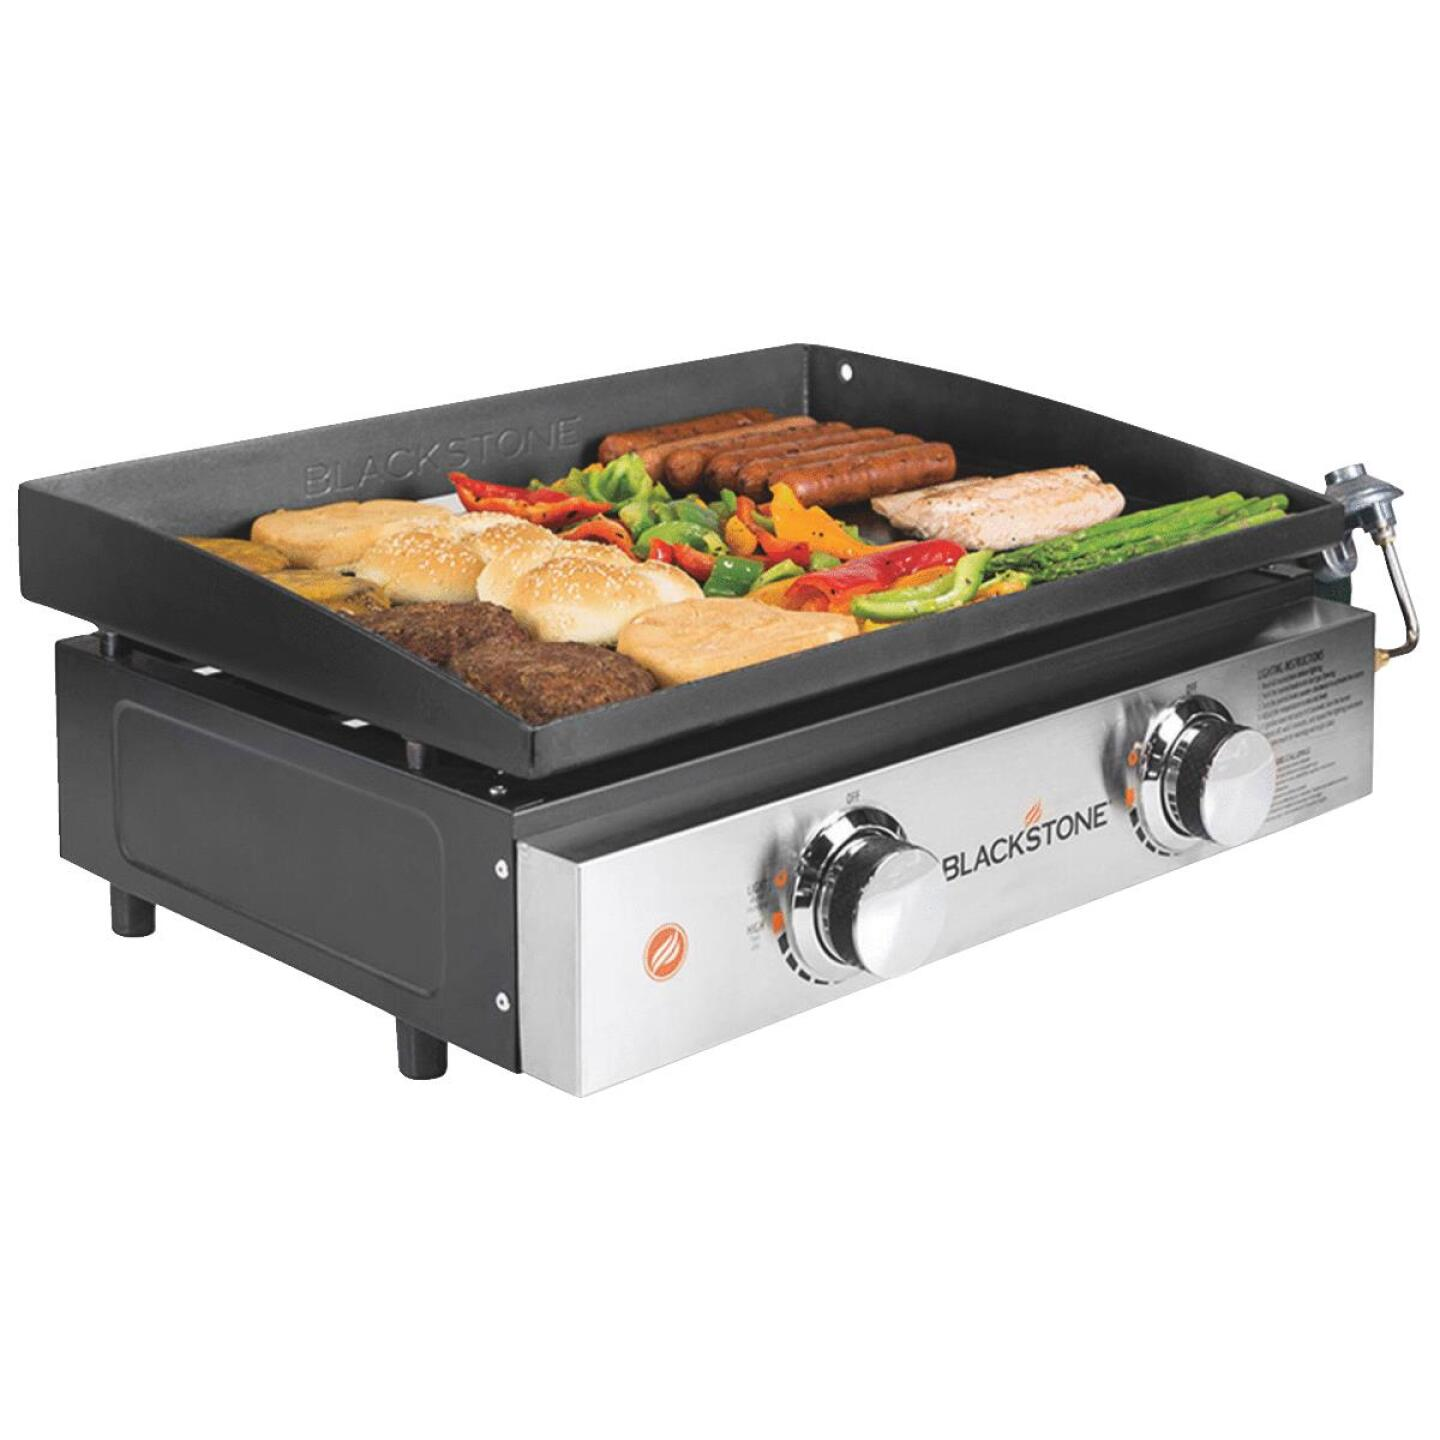 Blackstone Culinary Series 22 361 Sq. In. Table Top Gas Griddle with Hood Image 2